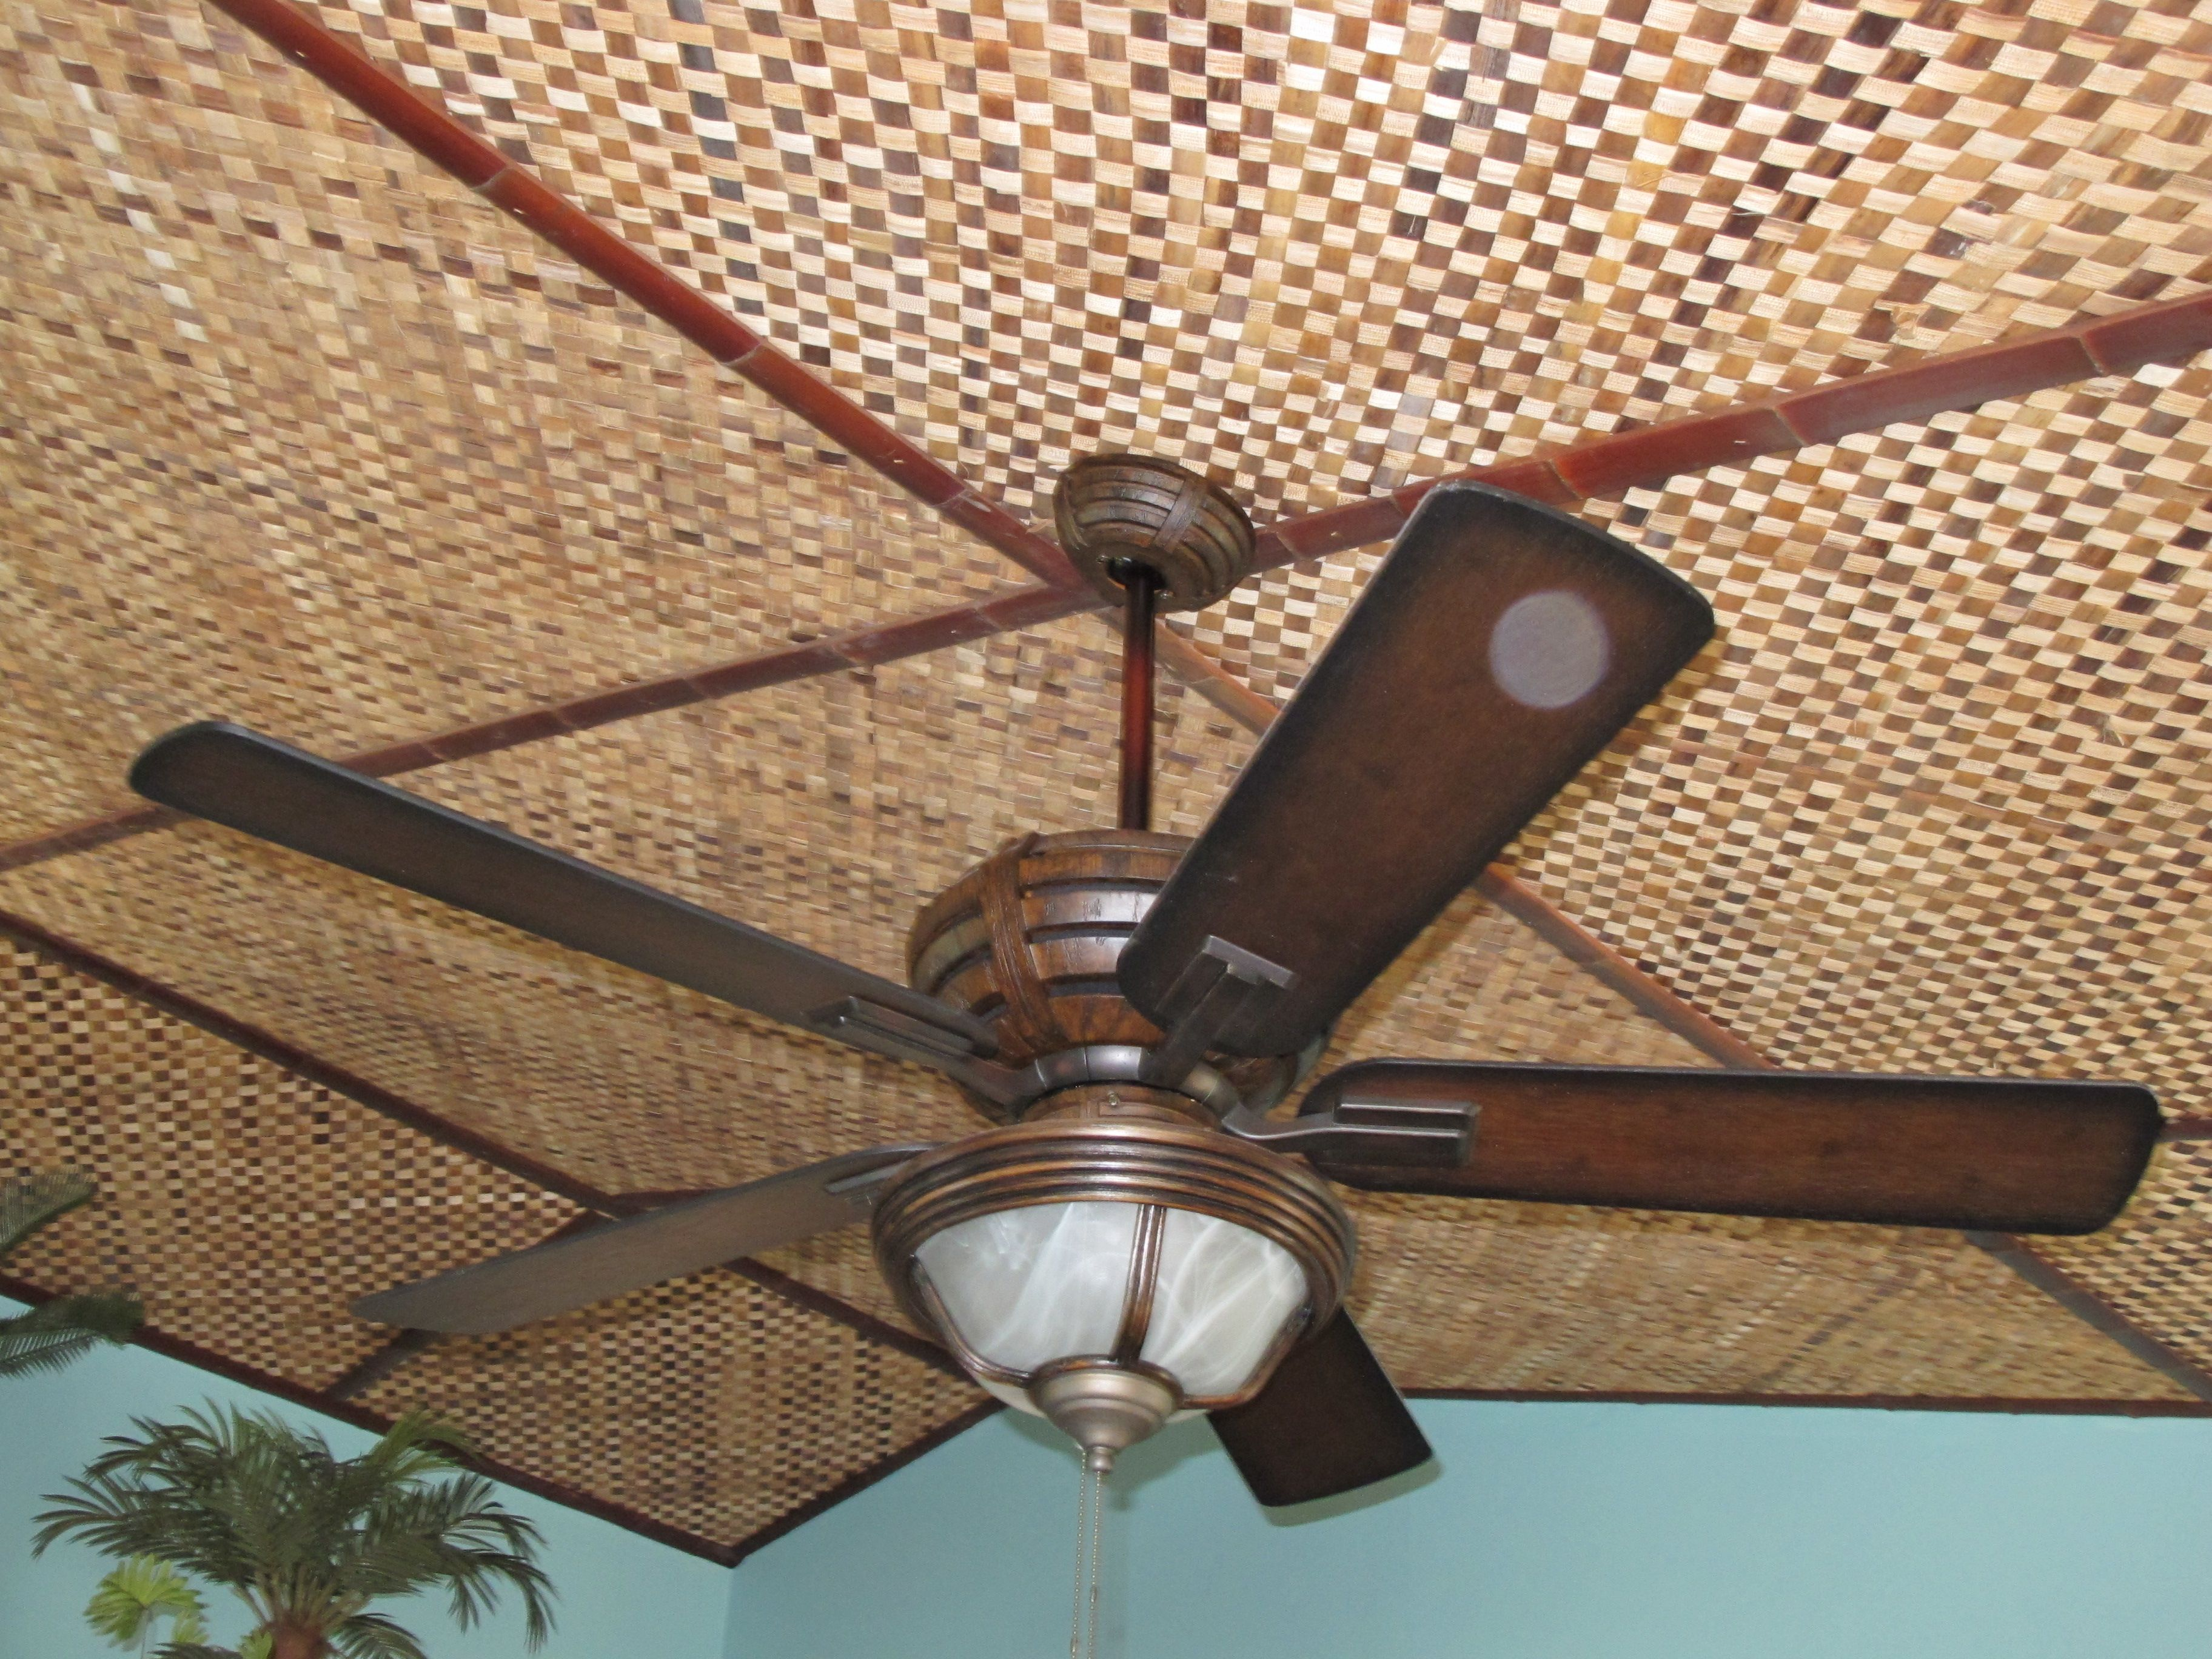 Bac bac matting and bamboo ceiling beach style pinterest bac bac matting and bamboo ceiling dailygadgetfo Images